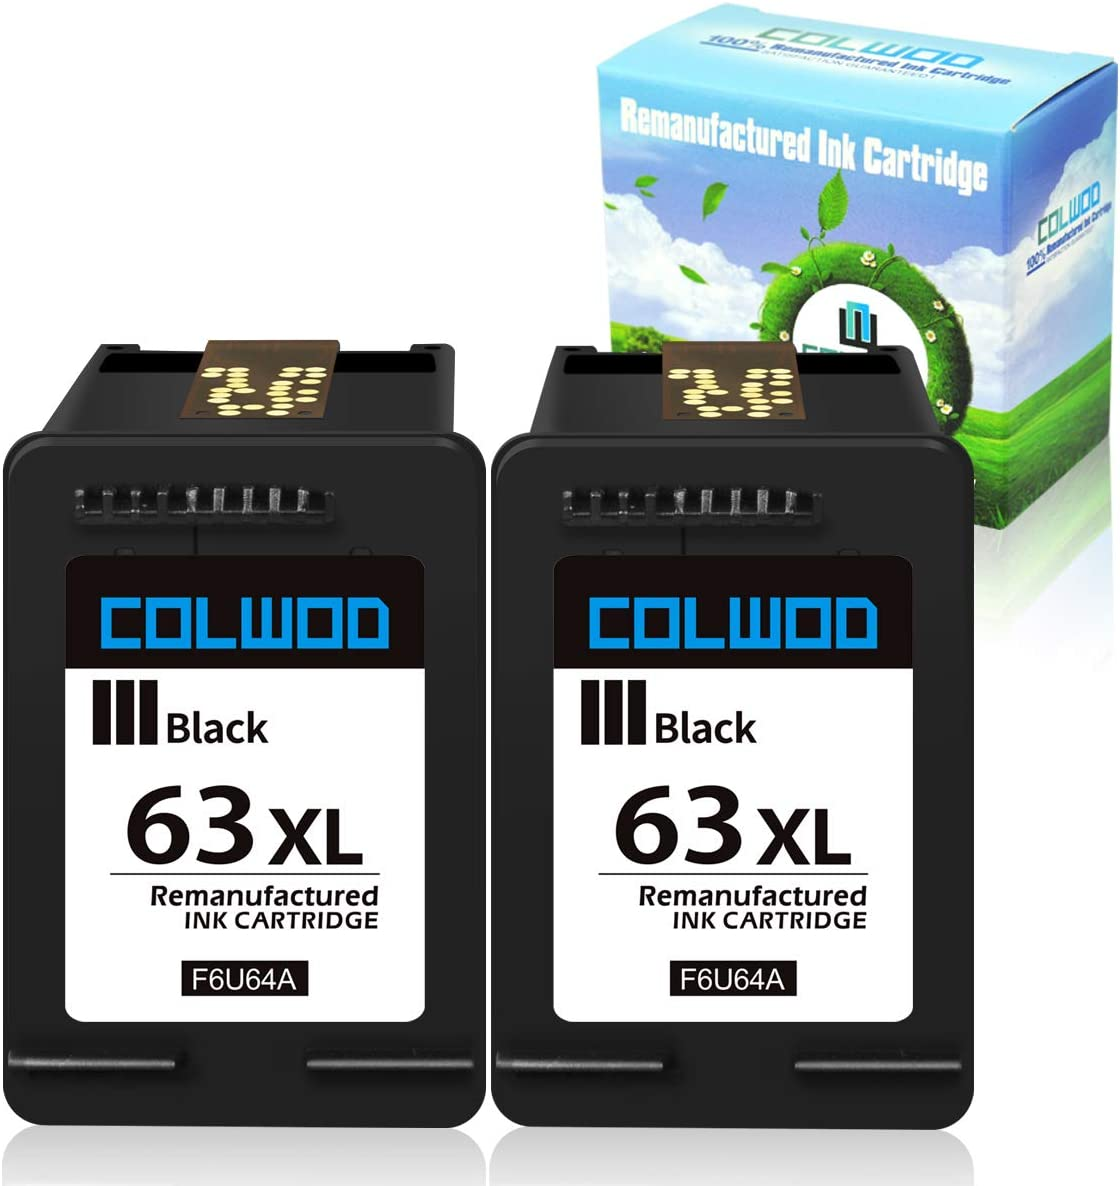 CLOWOD Re-Manufactured Ink Cartridge Replacement for HP 63 63XL use with HP DeskJet 1122 2132 3636 HP Envy 4525 4528 OfficeJet 3830 5255 5258 5252 3832(2 Black)